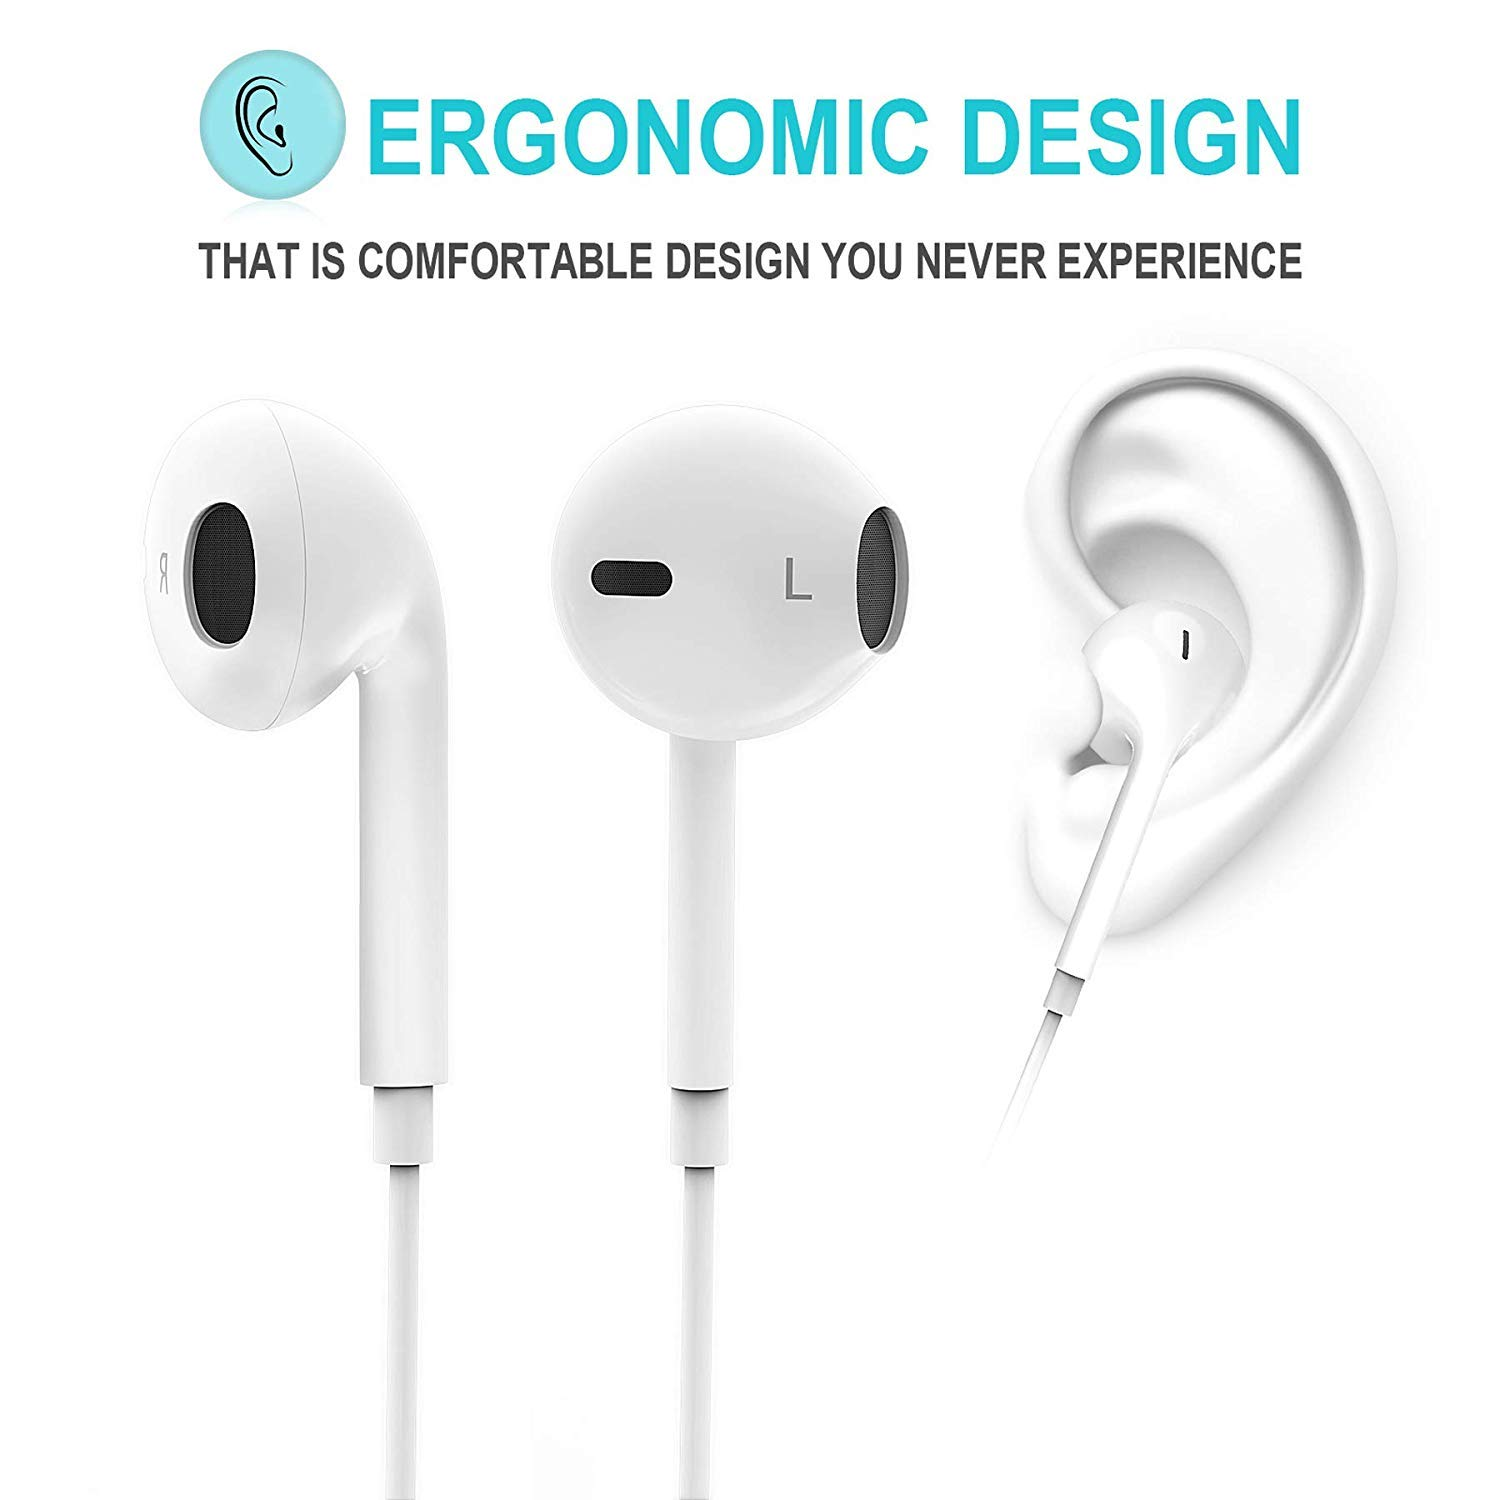 Bluetooth Headphones, in-Ear Wireless Earbuds, 4.2 Waterproof Sports Bluetooth Earphones with Mic Noise Cancelling Stereo Wireless Bluetooth Headphones for Gym Running Workout TTB001 by GouQing (Image #3)